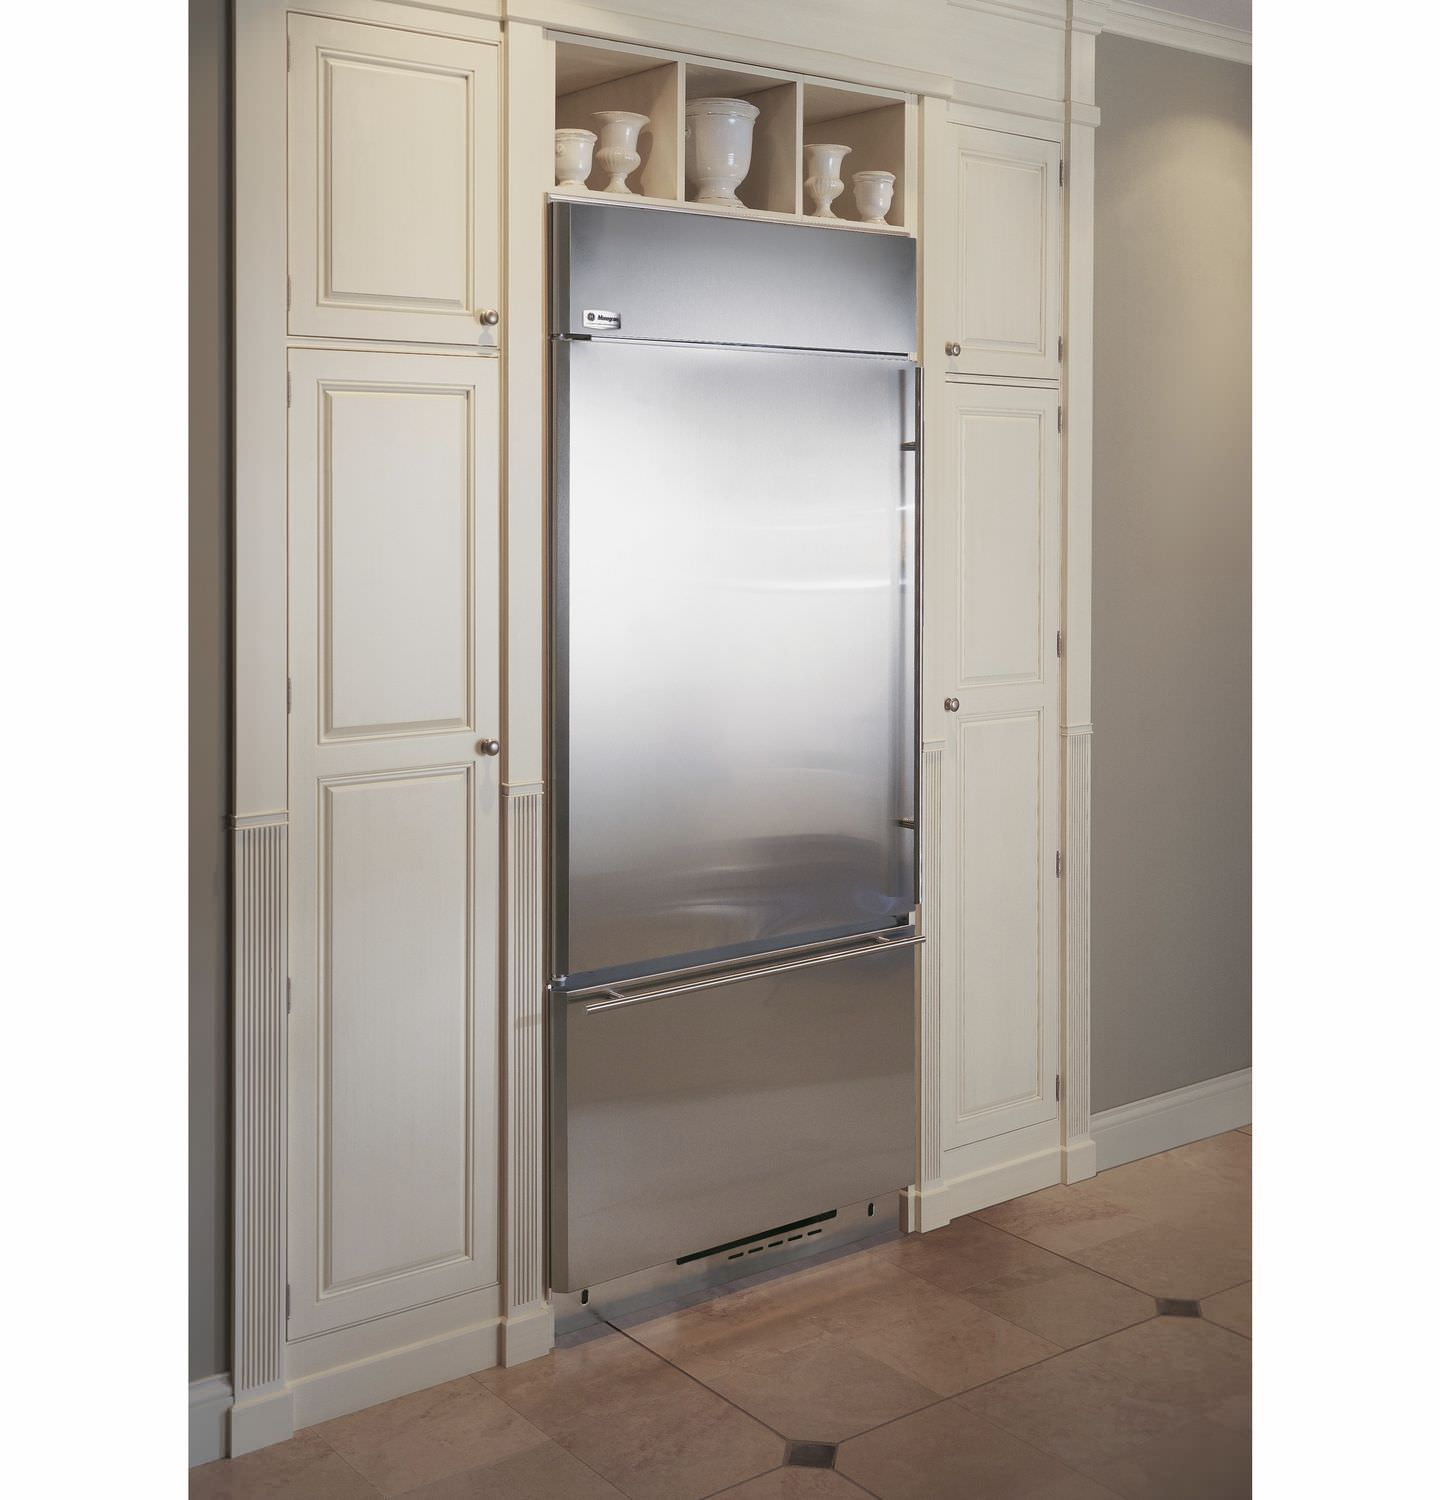 Home Refrigerator Freezer Upright Stainless Steel Energy Efficient